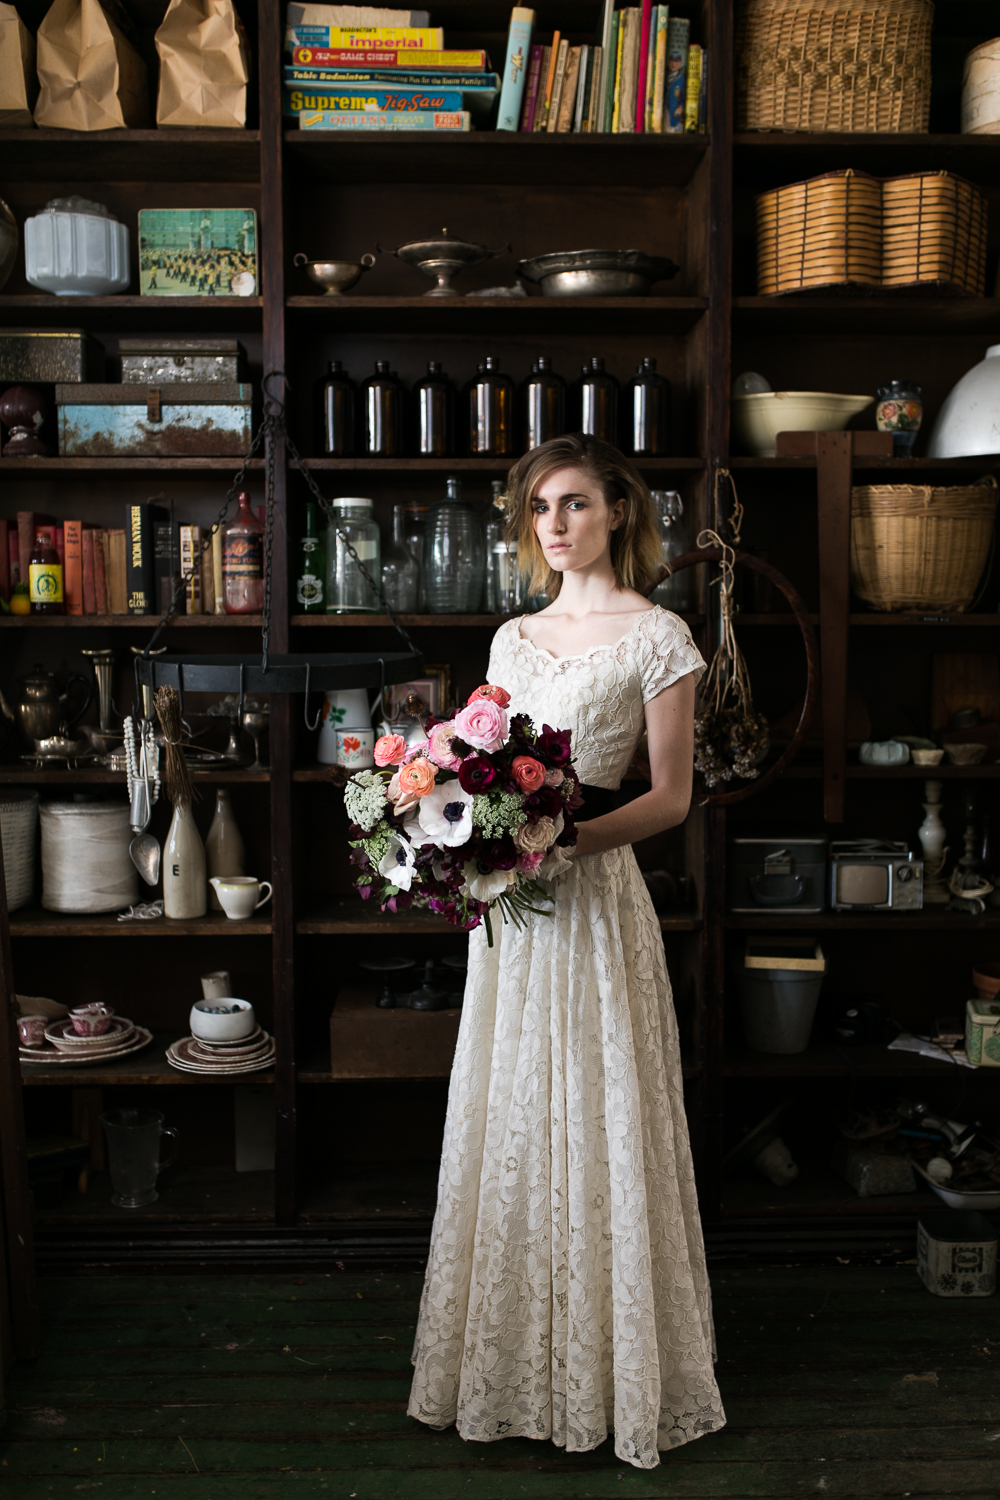 salvaged-beauty-edwina-richards-photography-2488